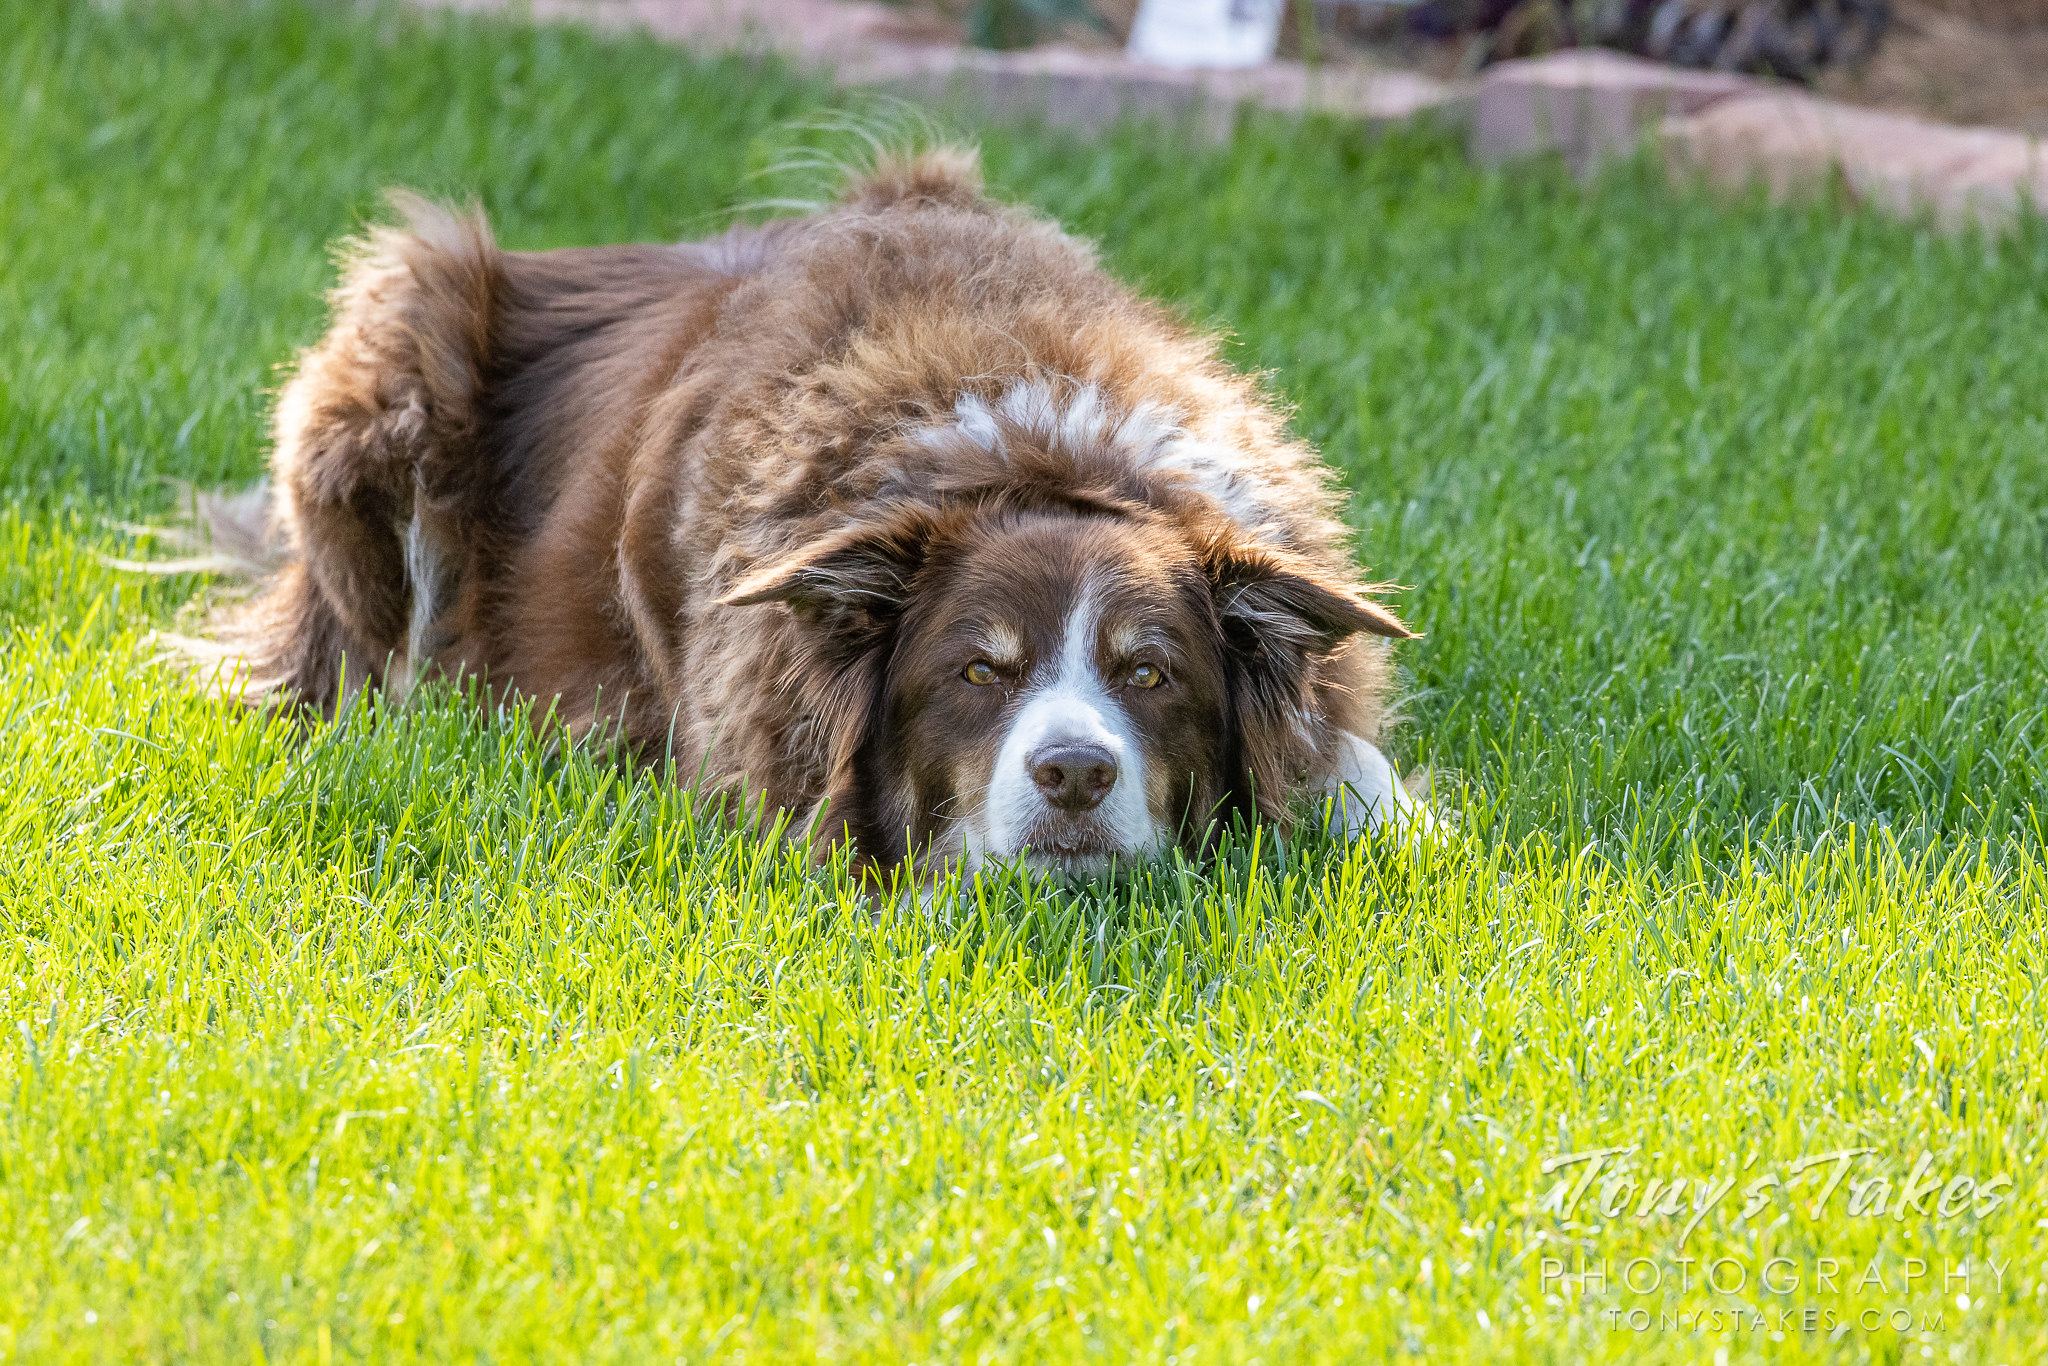 Scout anxiously awaits another throw of the Frisbee. (© Tony's Takes)